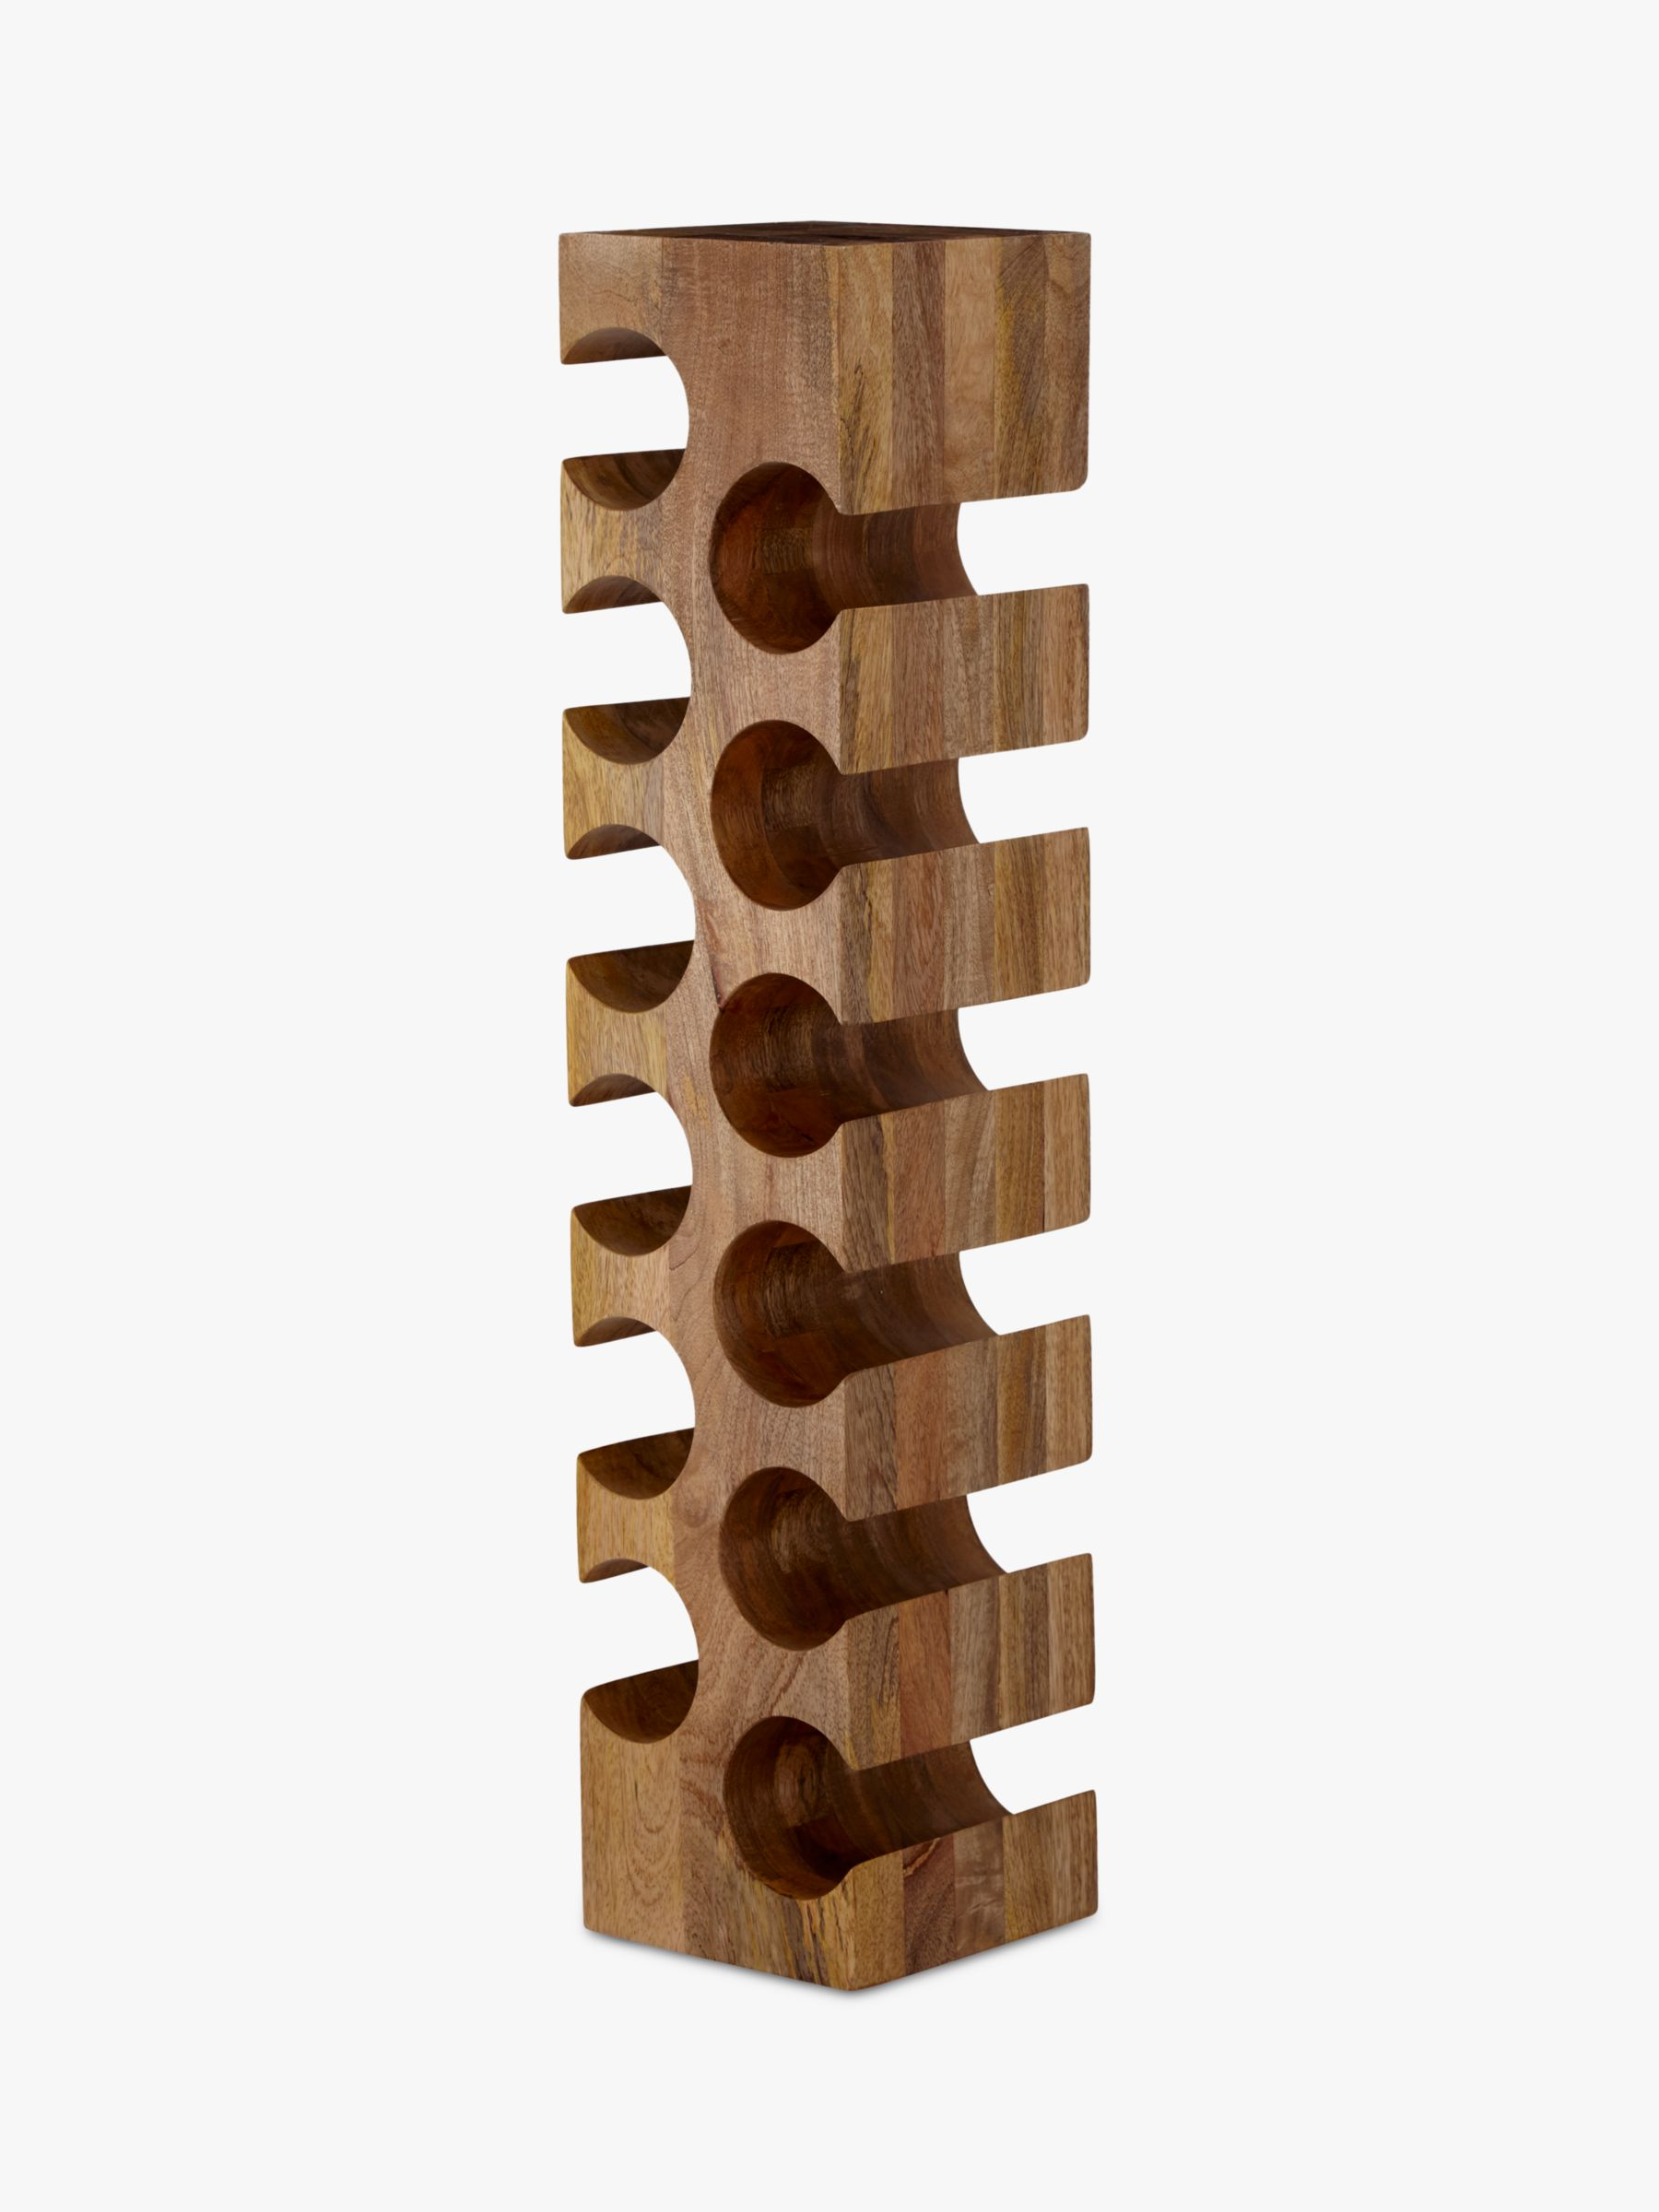 can you put a wine rack in living room stairs ideas john lewis partners 12 bottle mango wood at buyjohn online johnlewis